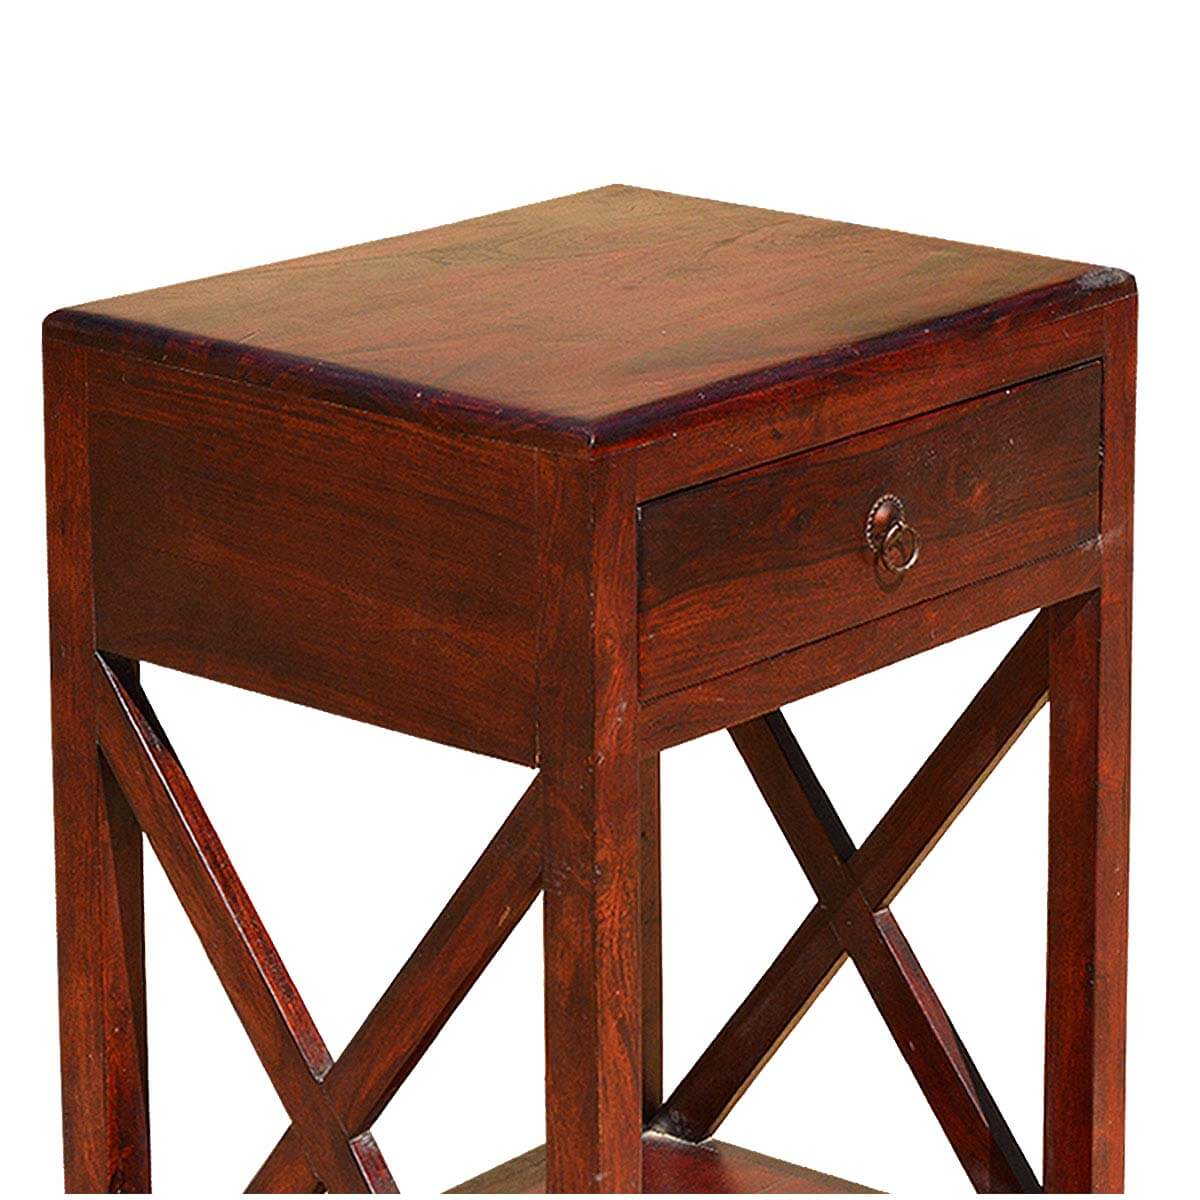 Superior ... Double X Indian Rosewood 2 Tier Night Stand End Table W Drawer ...